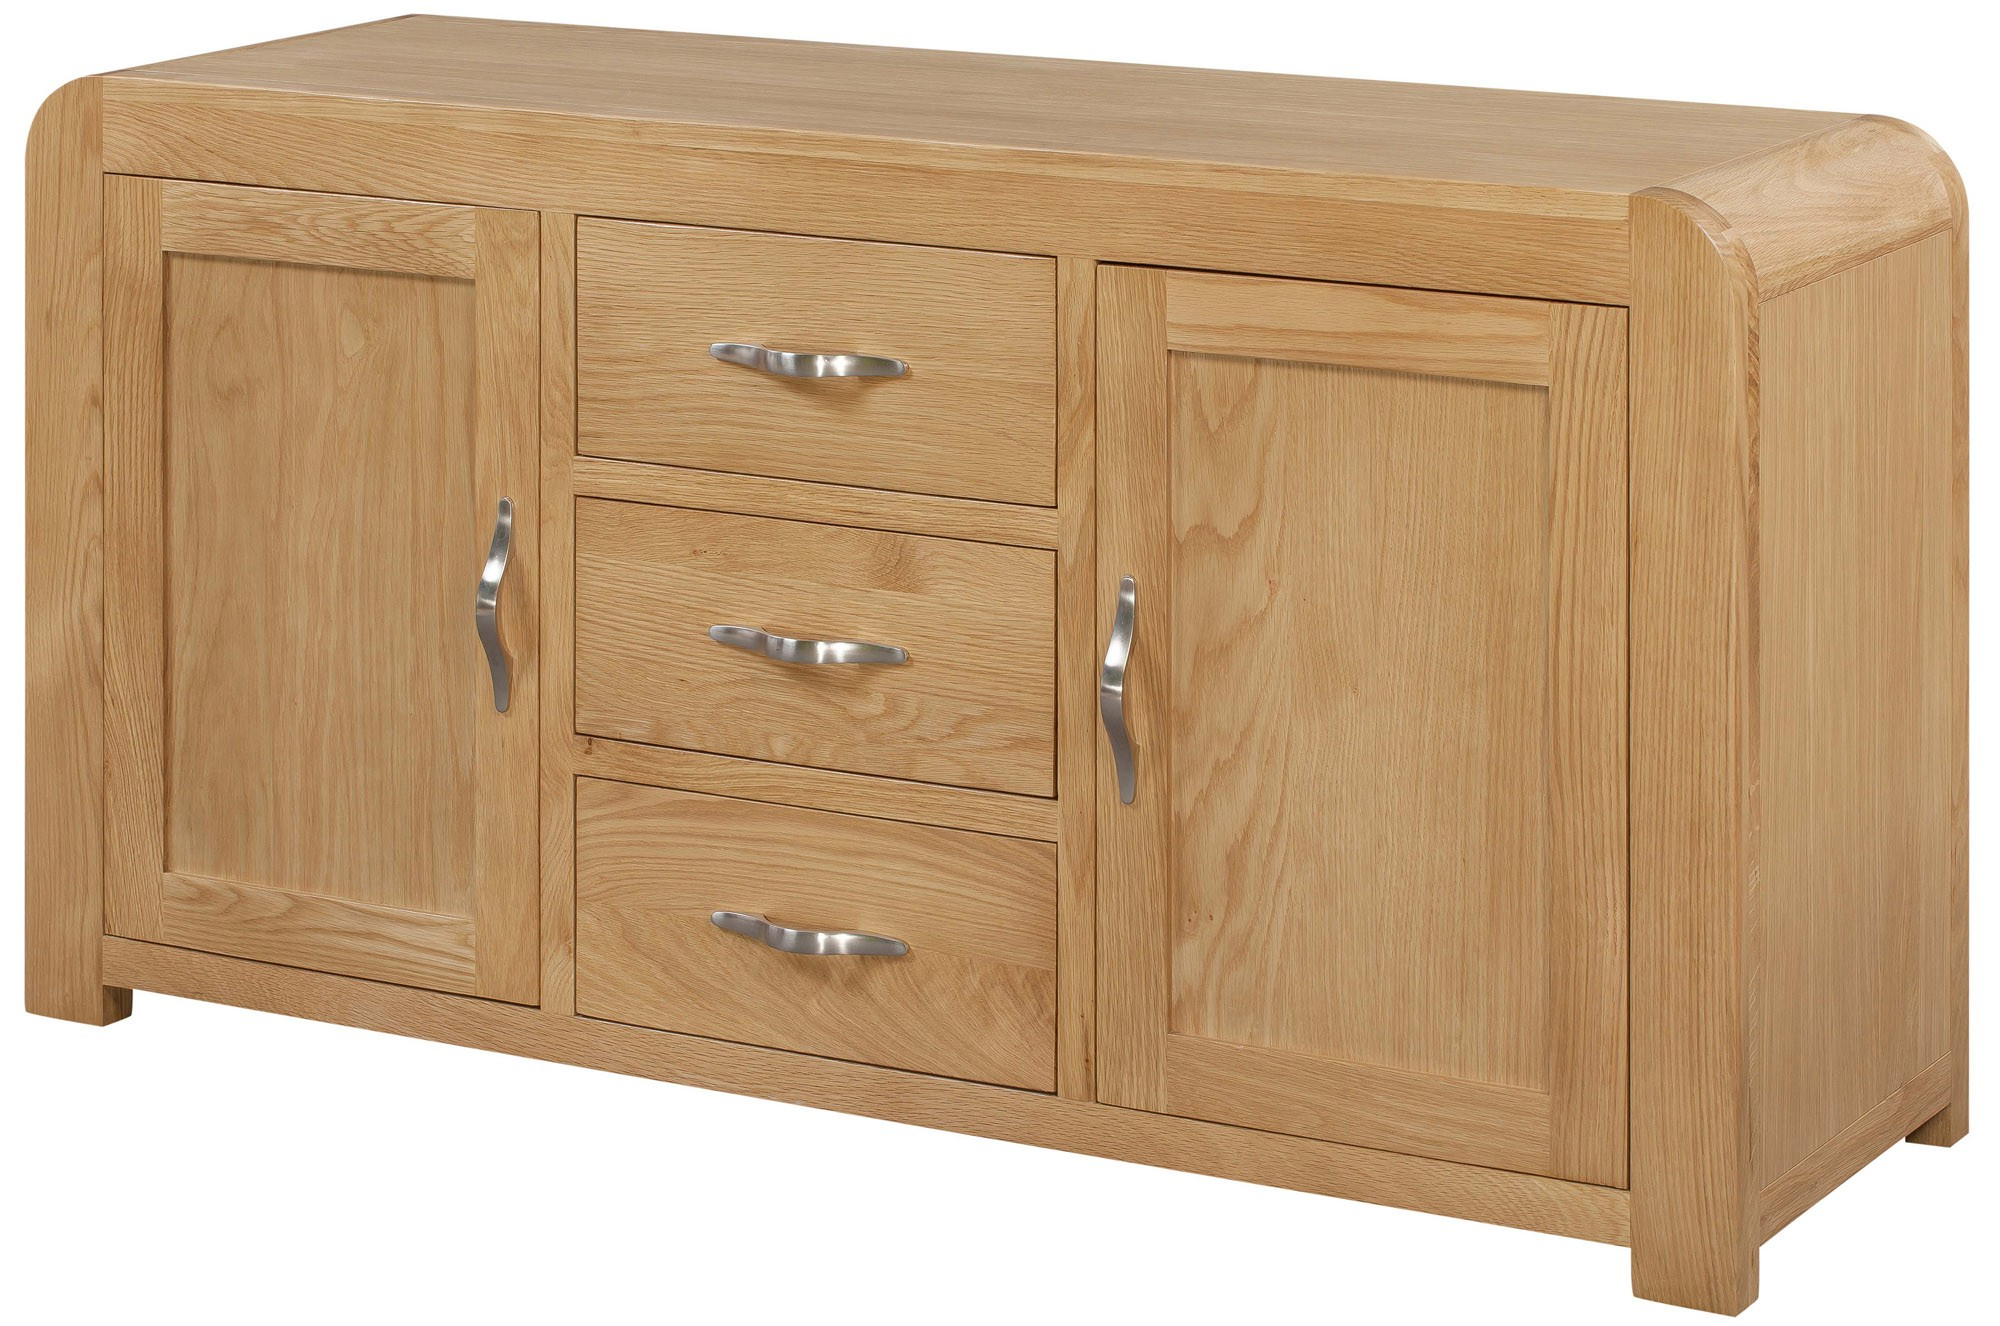 Famous Venice Sideboard With 2 Doors & 3 Drawers – Venice Oak Range – Shop Intended For Antique White Distressed 3 Drawer/2 Door Sideboards (View 7 of 20)